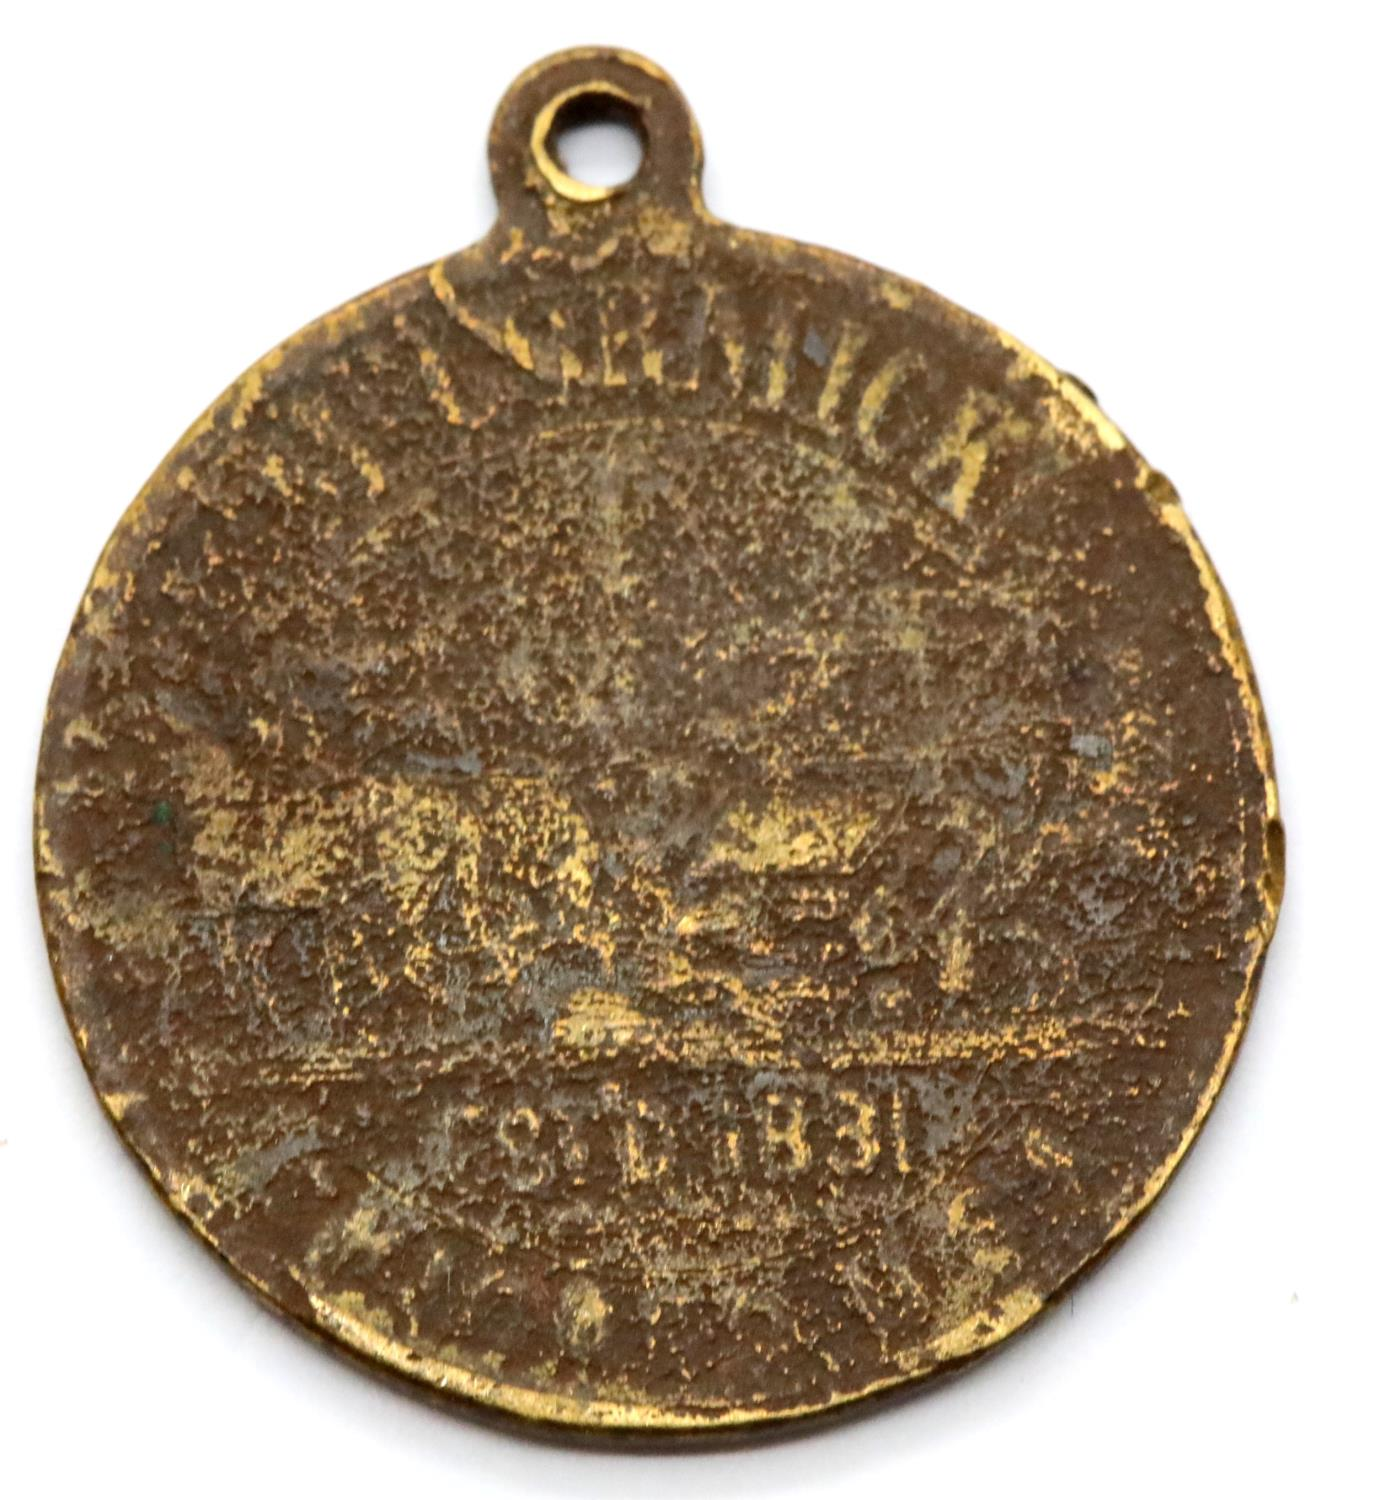 Worn brass McCormick medal. P&P Group 1 (£14+VAT for the first lot and £1+VAT for subsequent lots) - Image 2 of 2